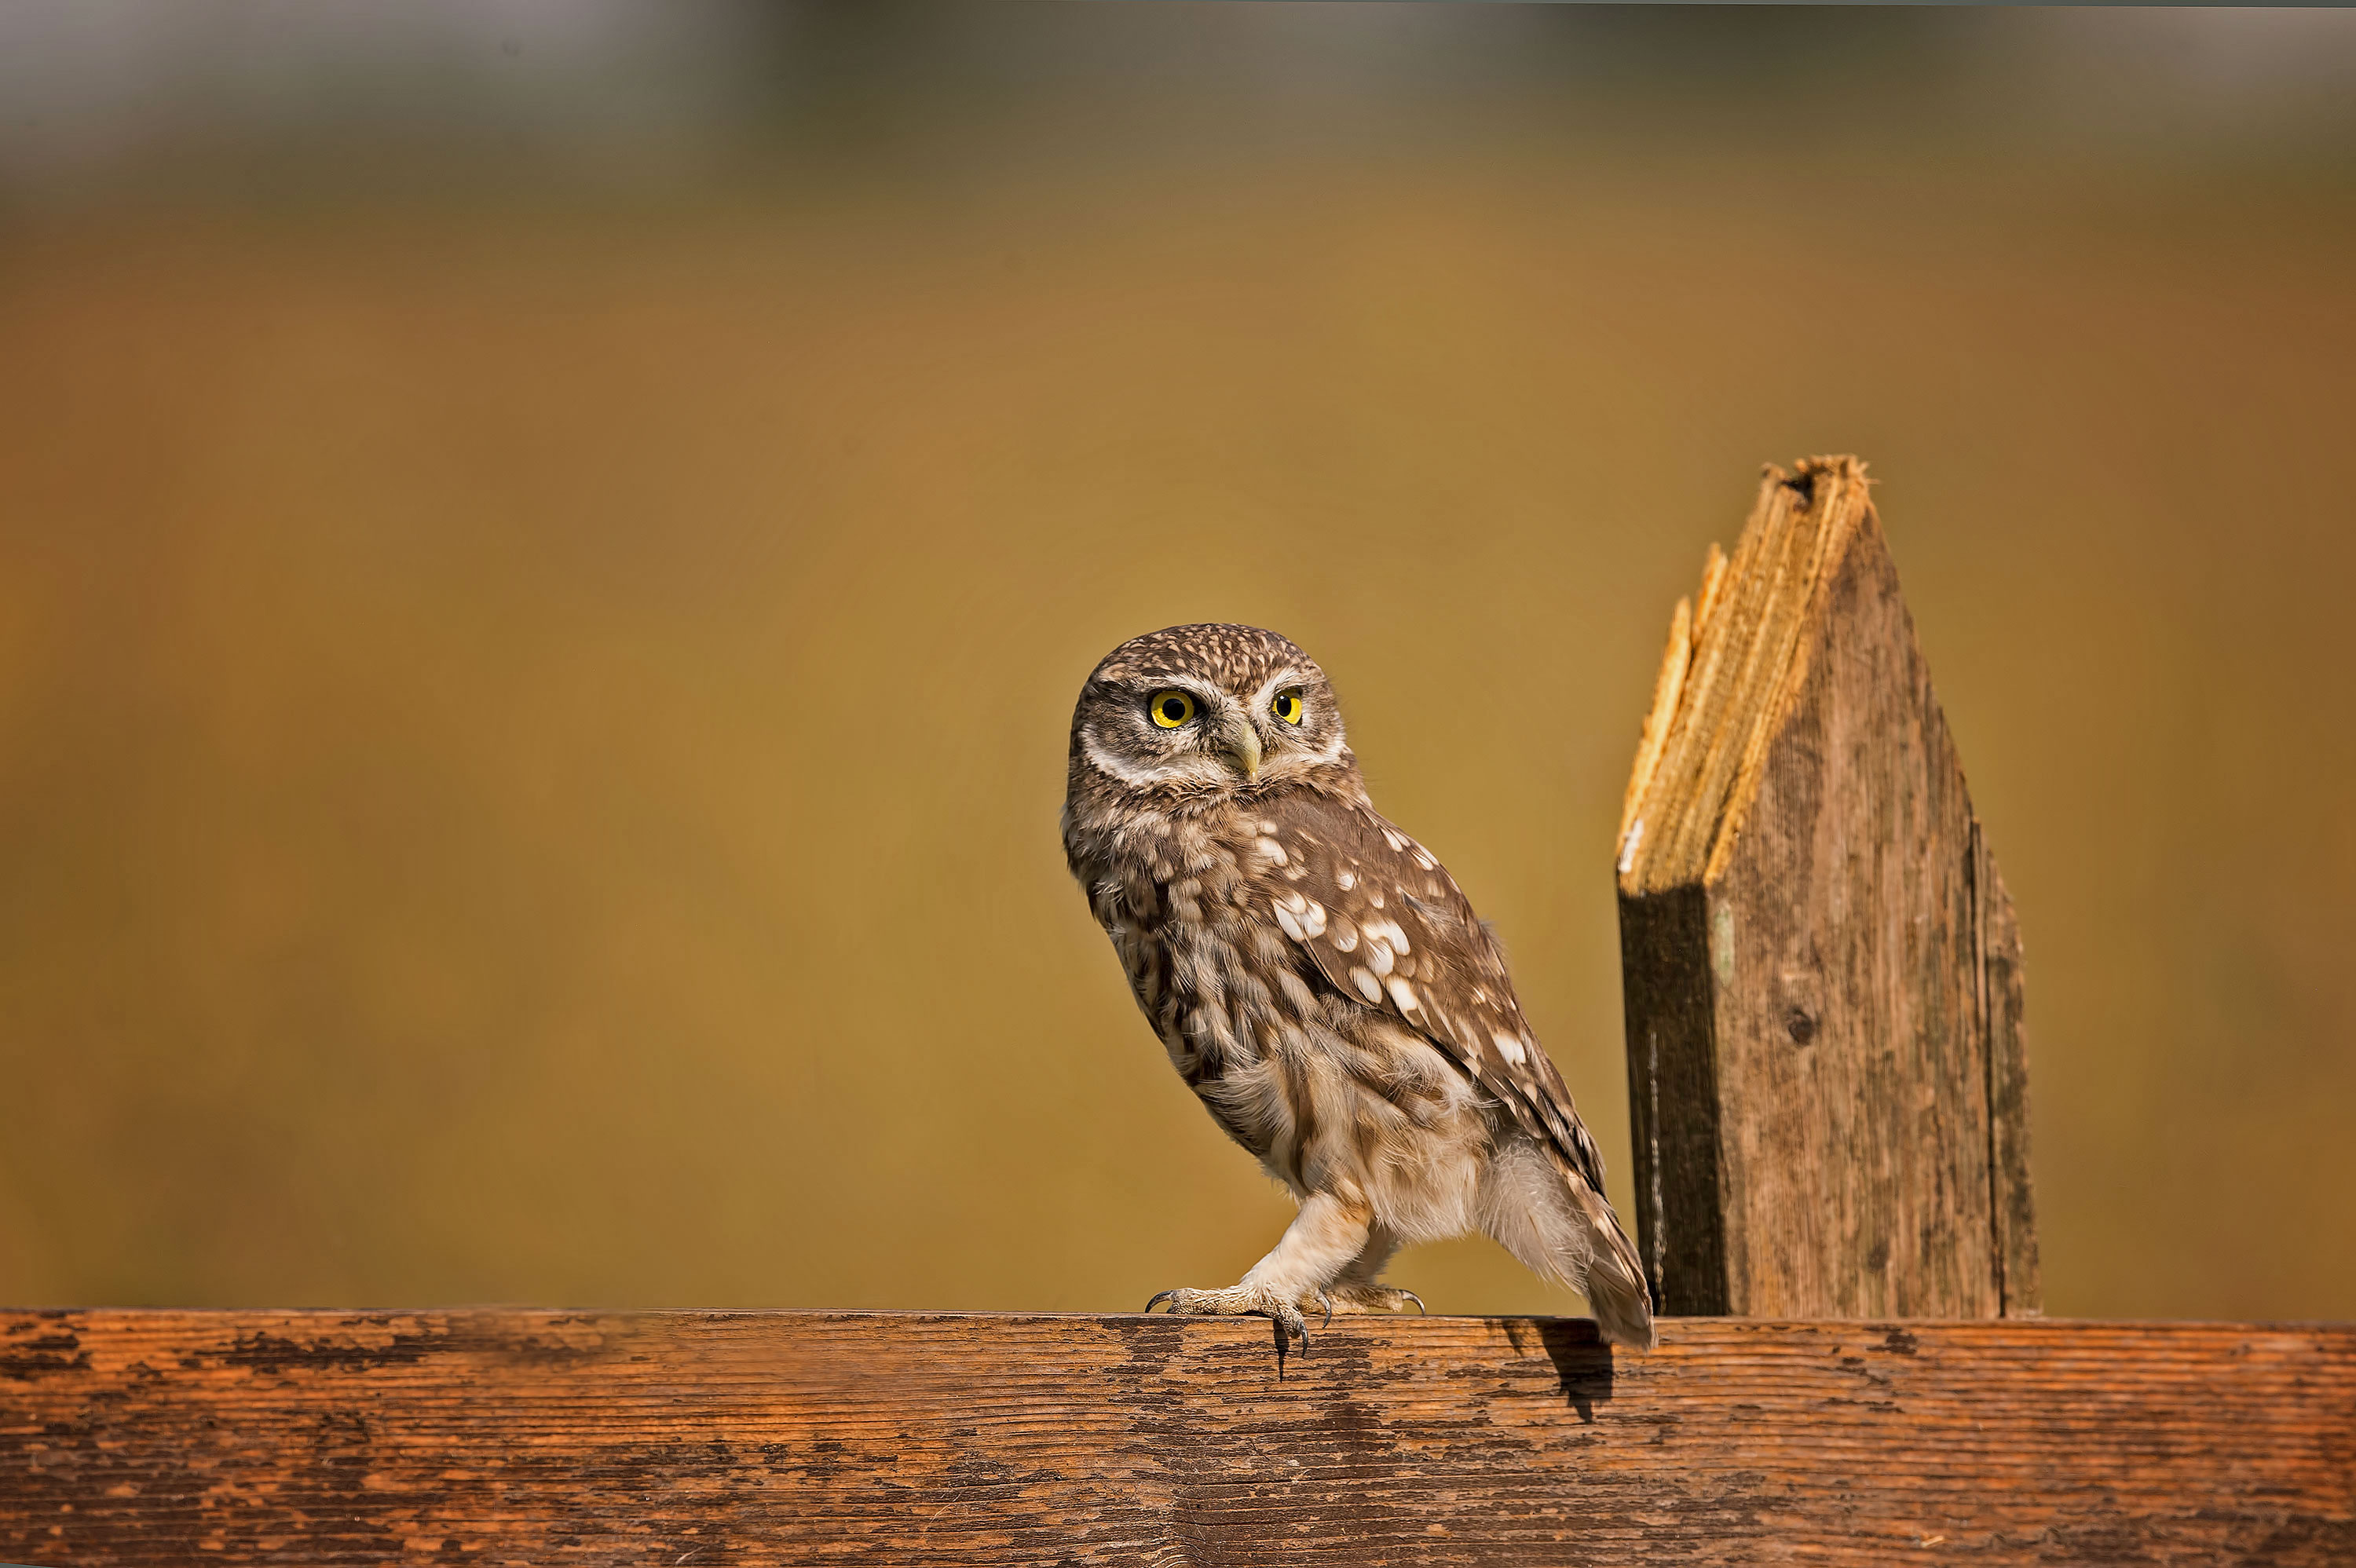 1920x1080 Little Owl 4k Laptop Full Hd 1080p Hd 4k Wallpapers Images Backgrounds Photos And Pictures